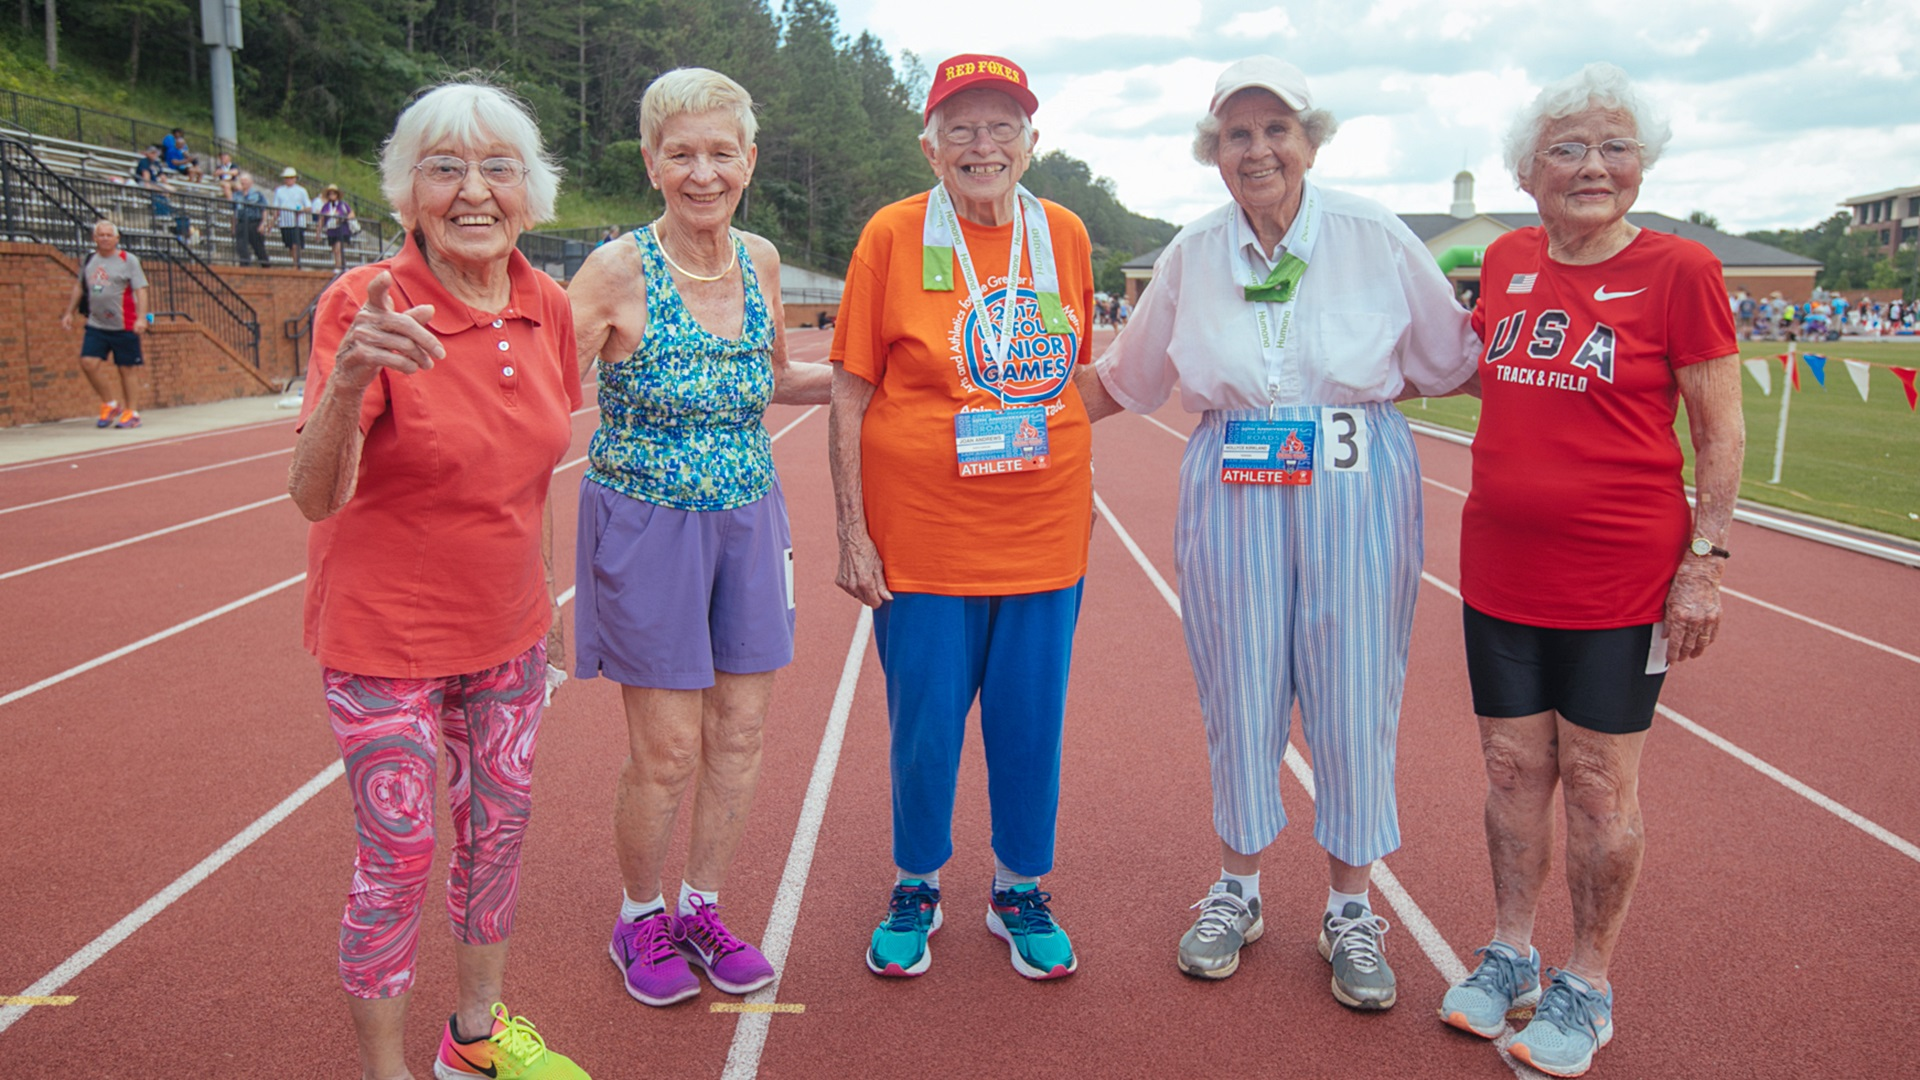 Joan Andrews wins three medals in the Senior Games. Photo courtesy of National Senior Games Association